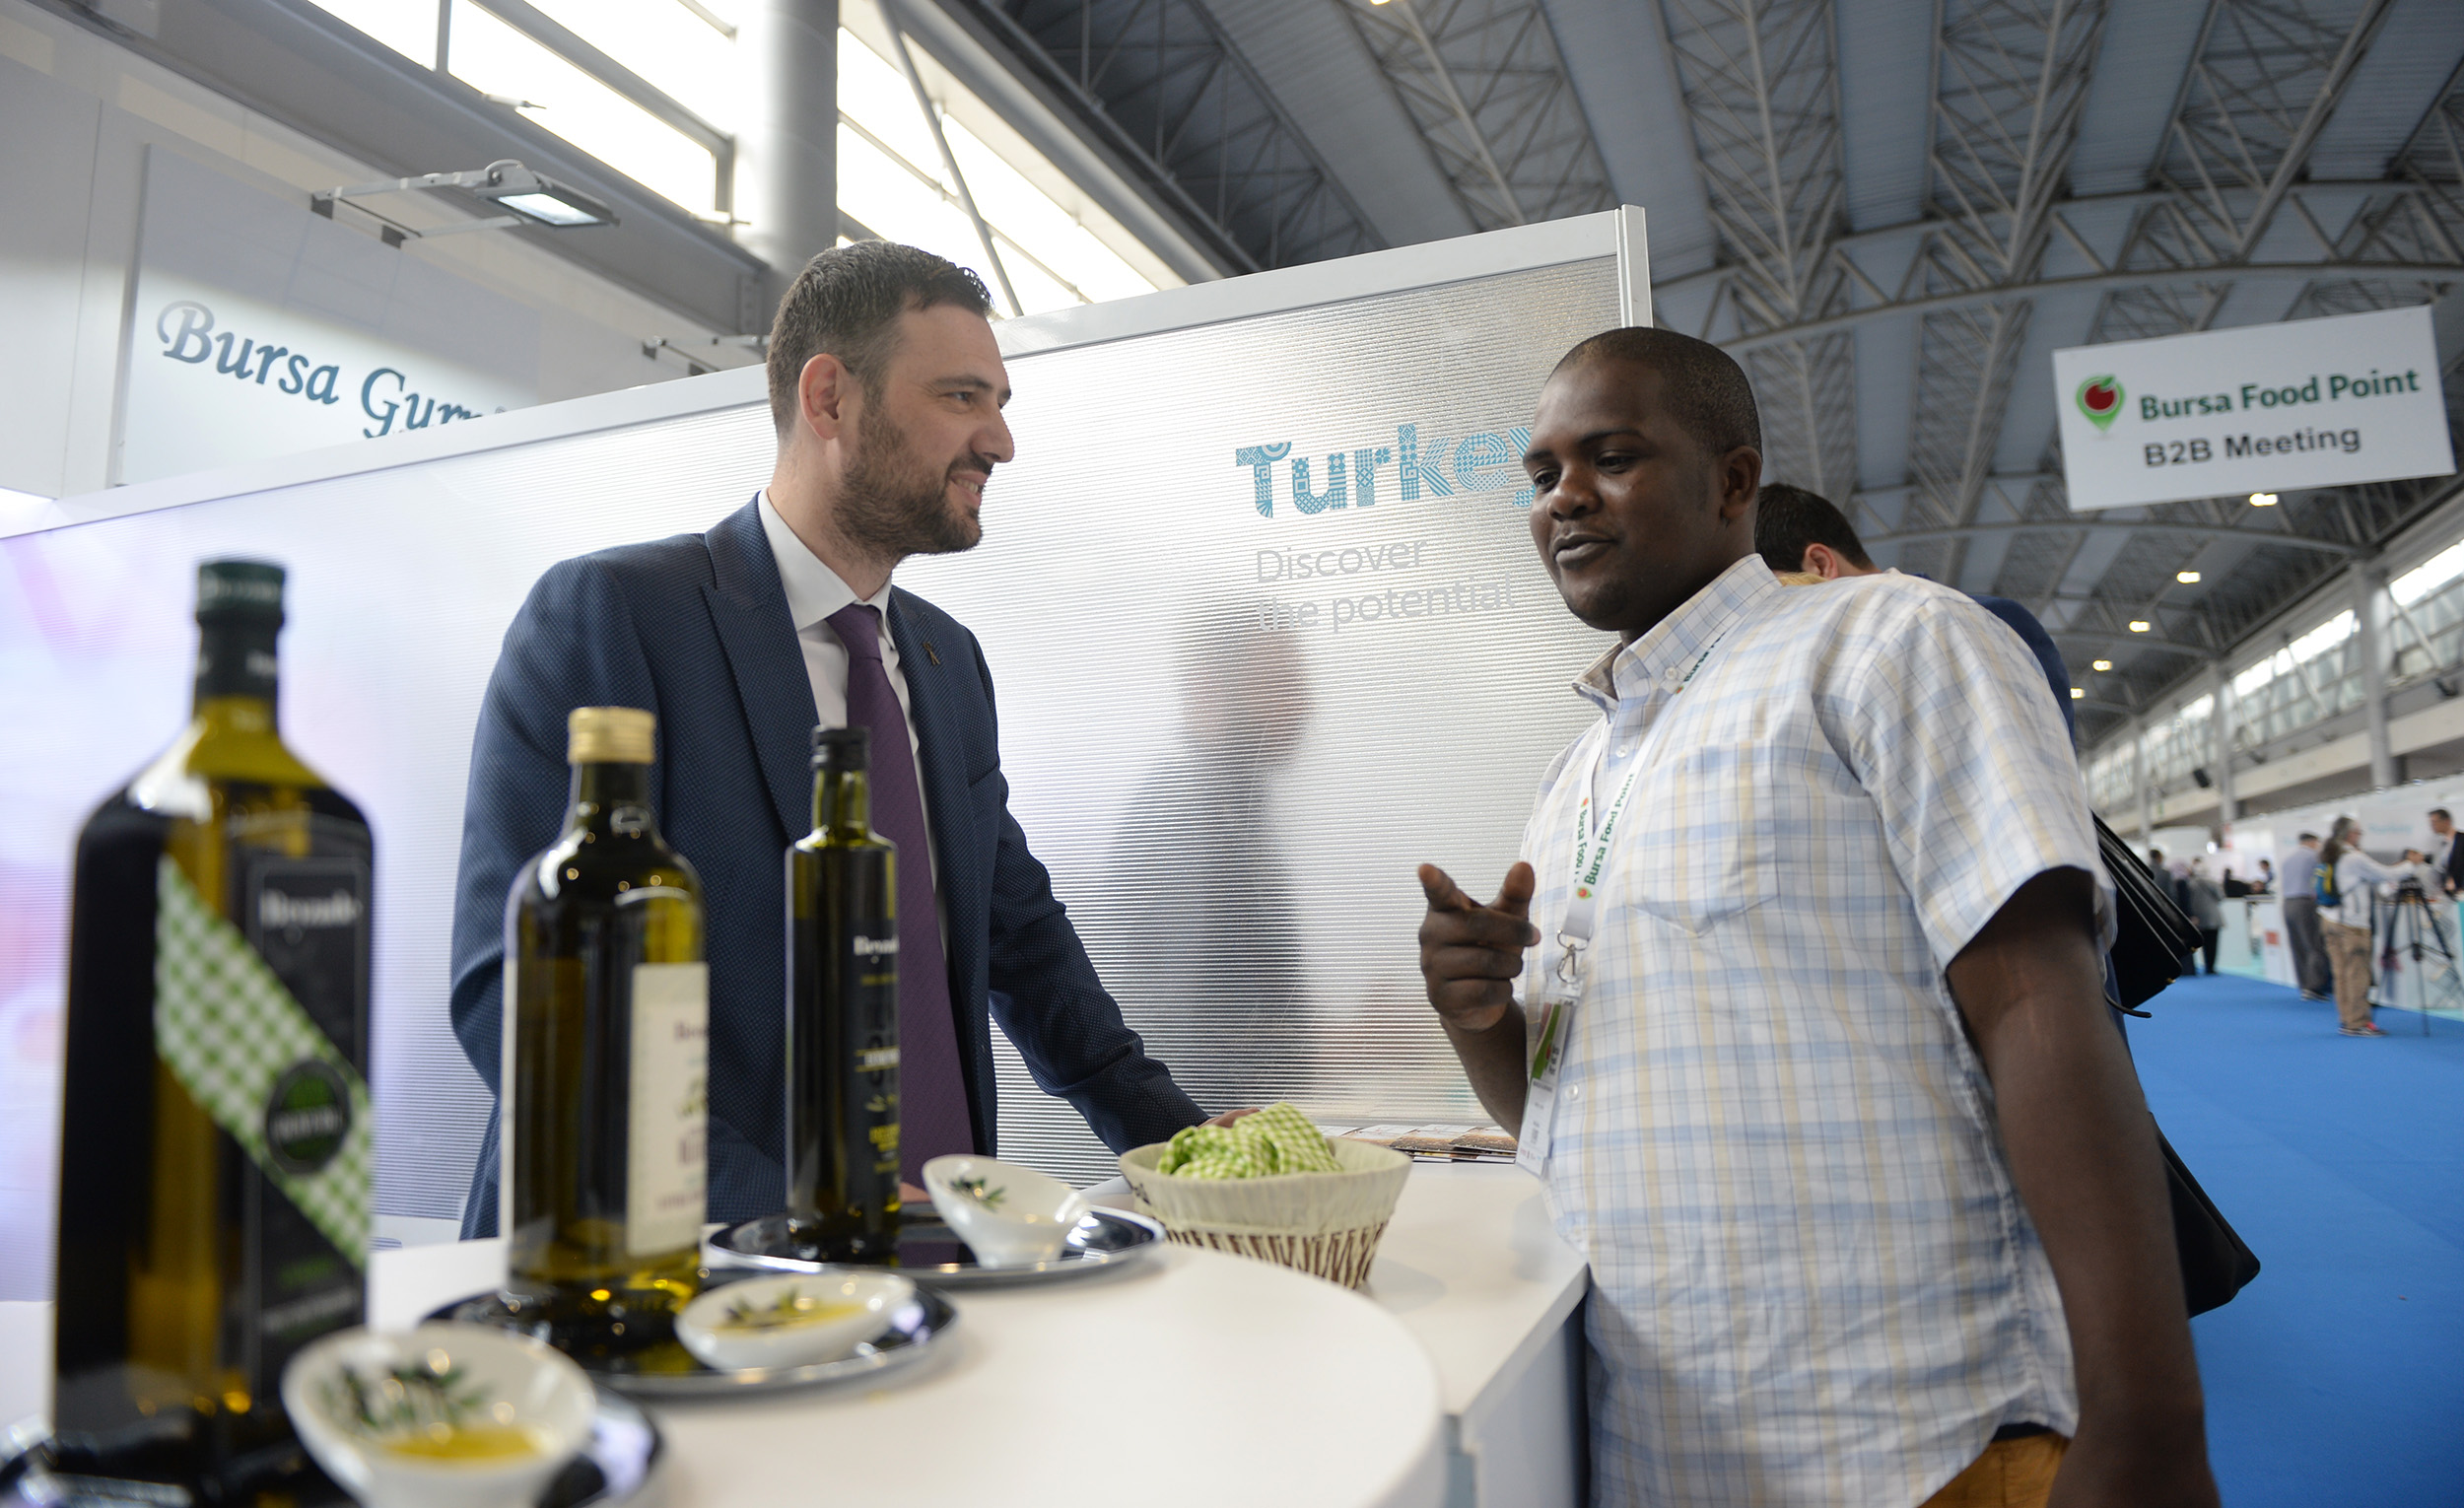 Bursa Food Point 4th Buyers